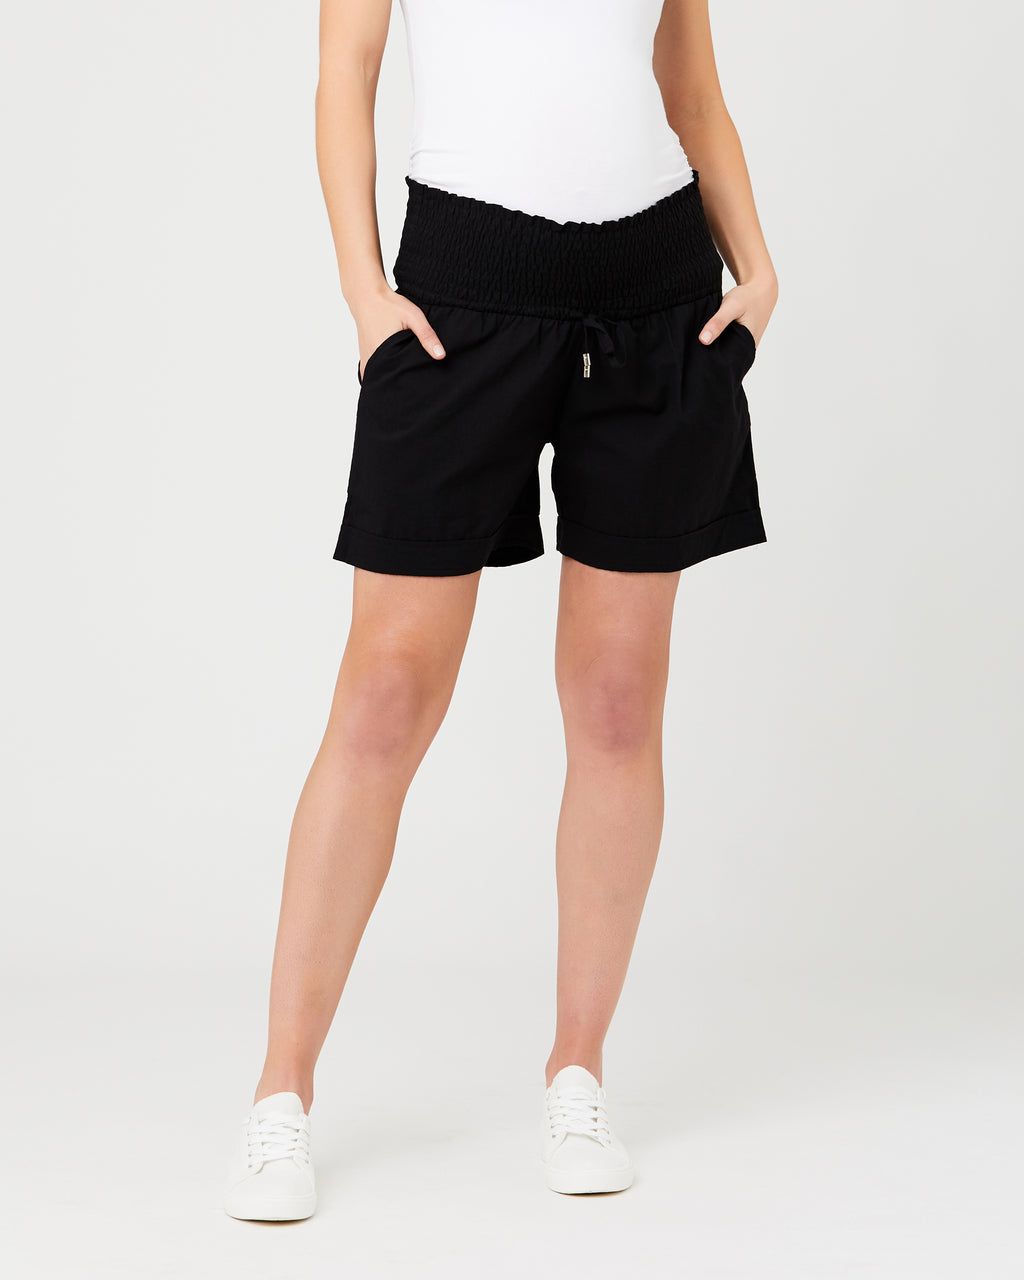 Philly Cotton Short - Black